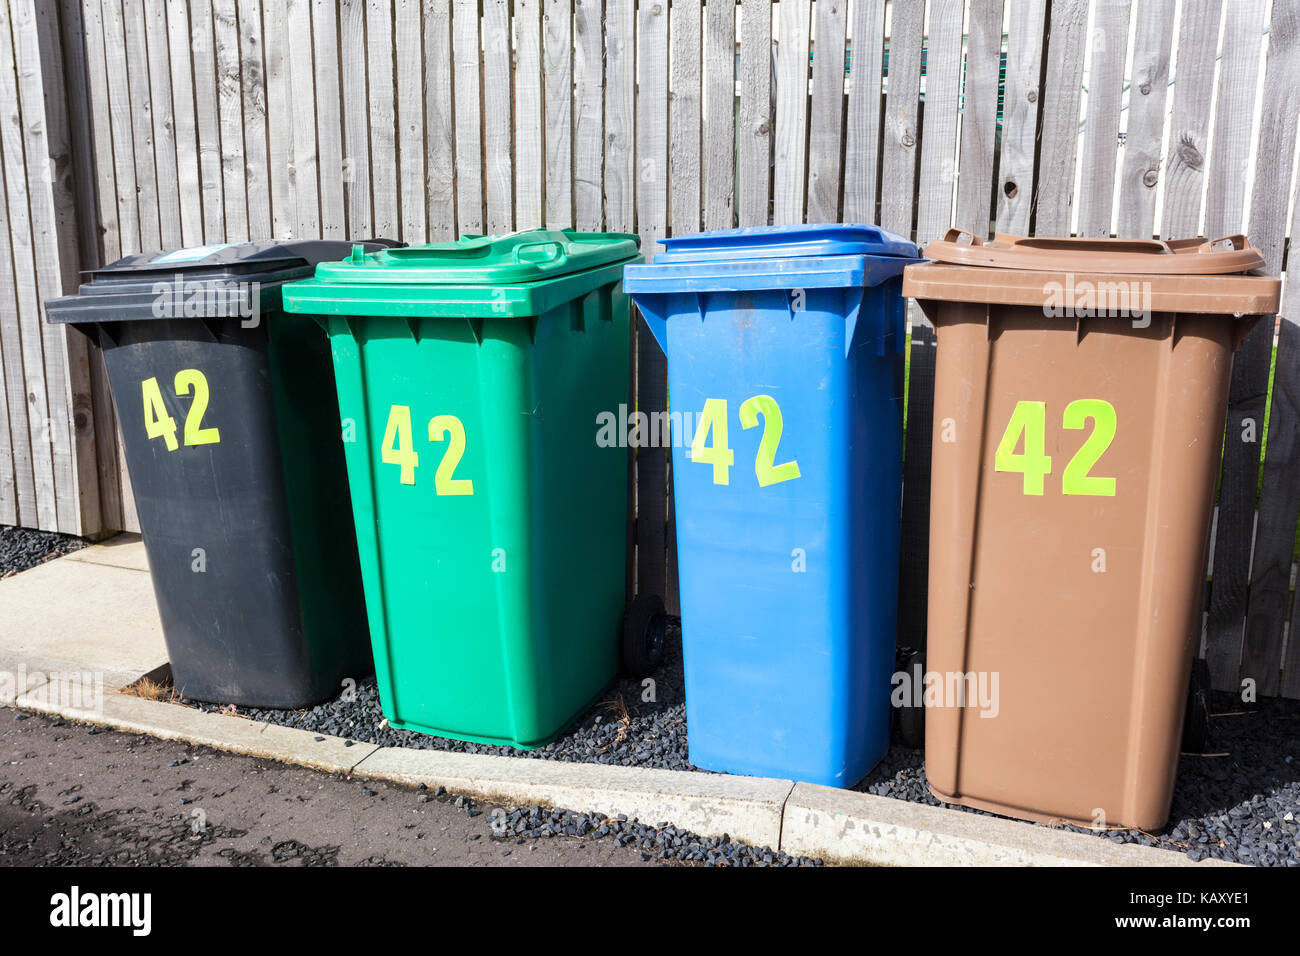 Dustbin Stock Photos & Dustbin Stock Images - Alamy